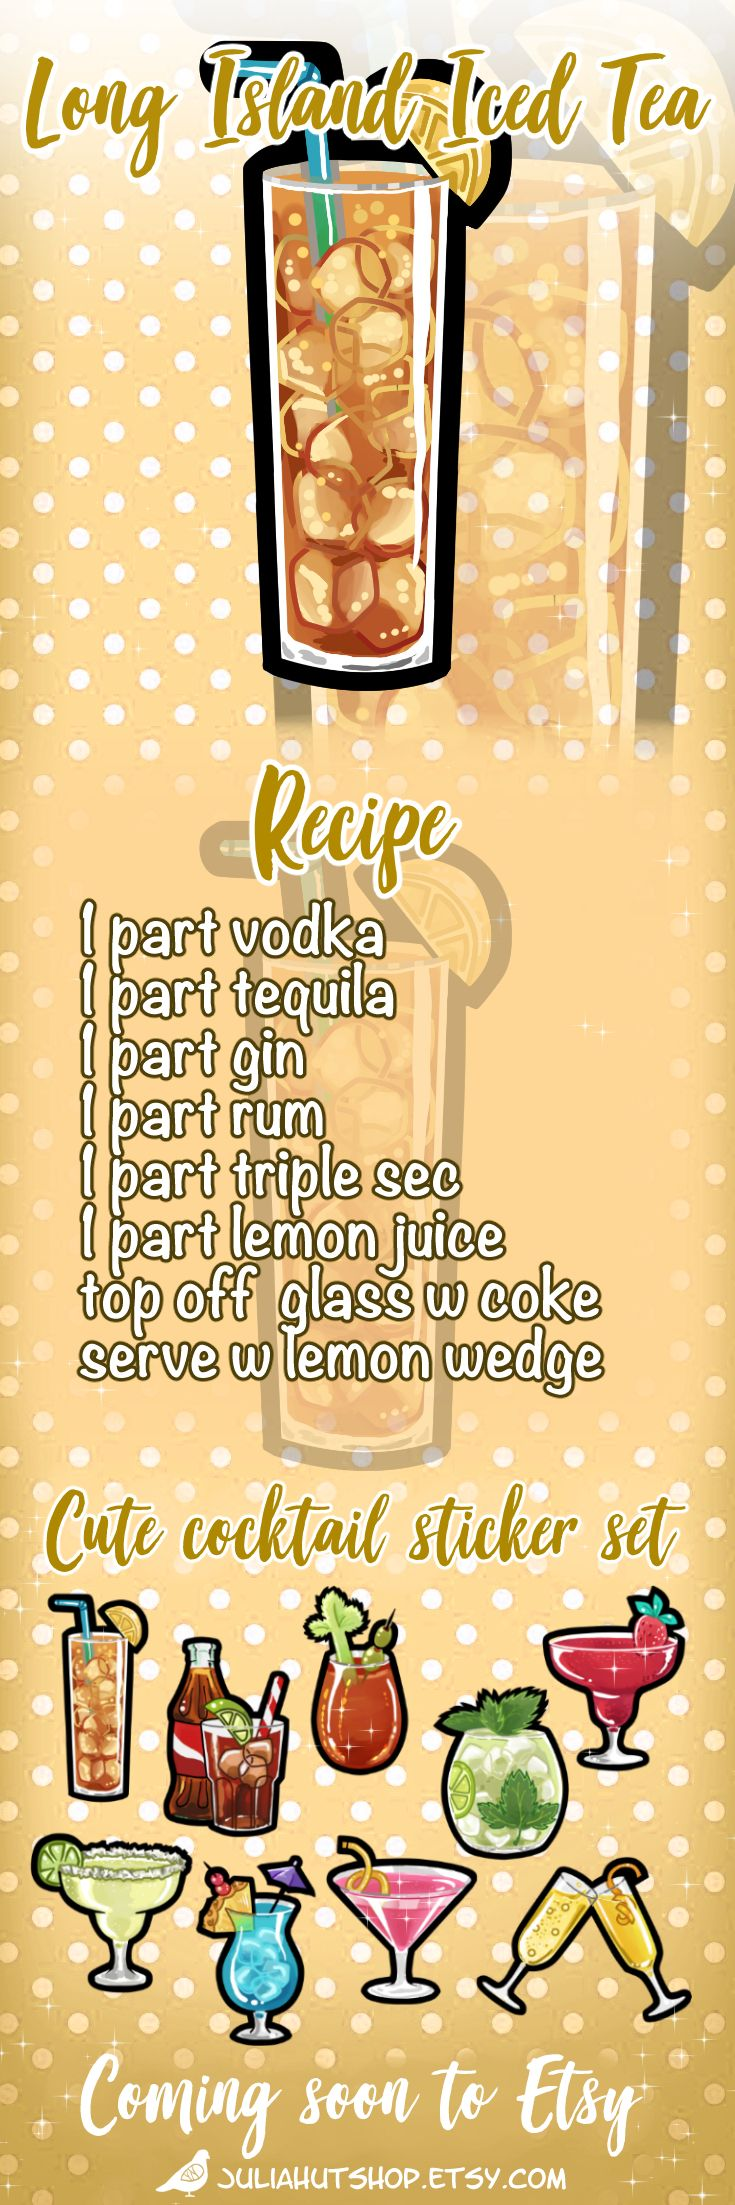 Recipe for Long Island Iced Tea Cocktail  fill a tall glass with ice, then add: 1 part vodka 1 part tequila 1 part gin 1 part rum 1 part triple sec 1 part lemon juice fill the remainder of your glass with coke garnish with a lemon wedge  This cocktail image is part of a sticker set, available soon from my Etsy sticker shop! #cocktailrecipe #etsy #etsyshop #stickerset #stickerlove #brunchcocktails #plannerstickers #longislandicedtea long island iced tea  cute cocktails sticker design etsy…